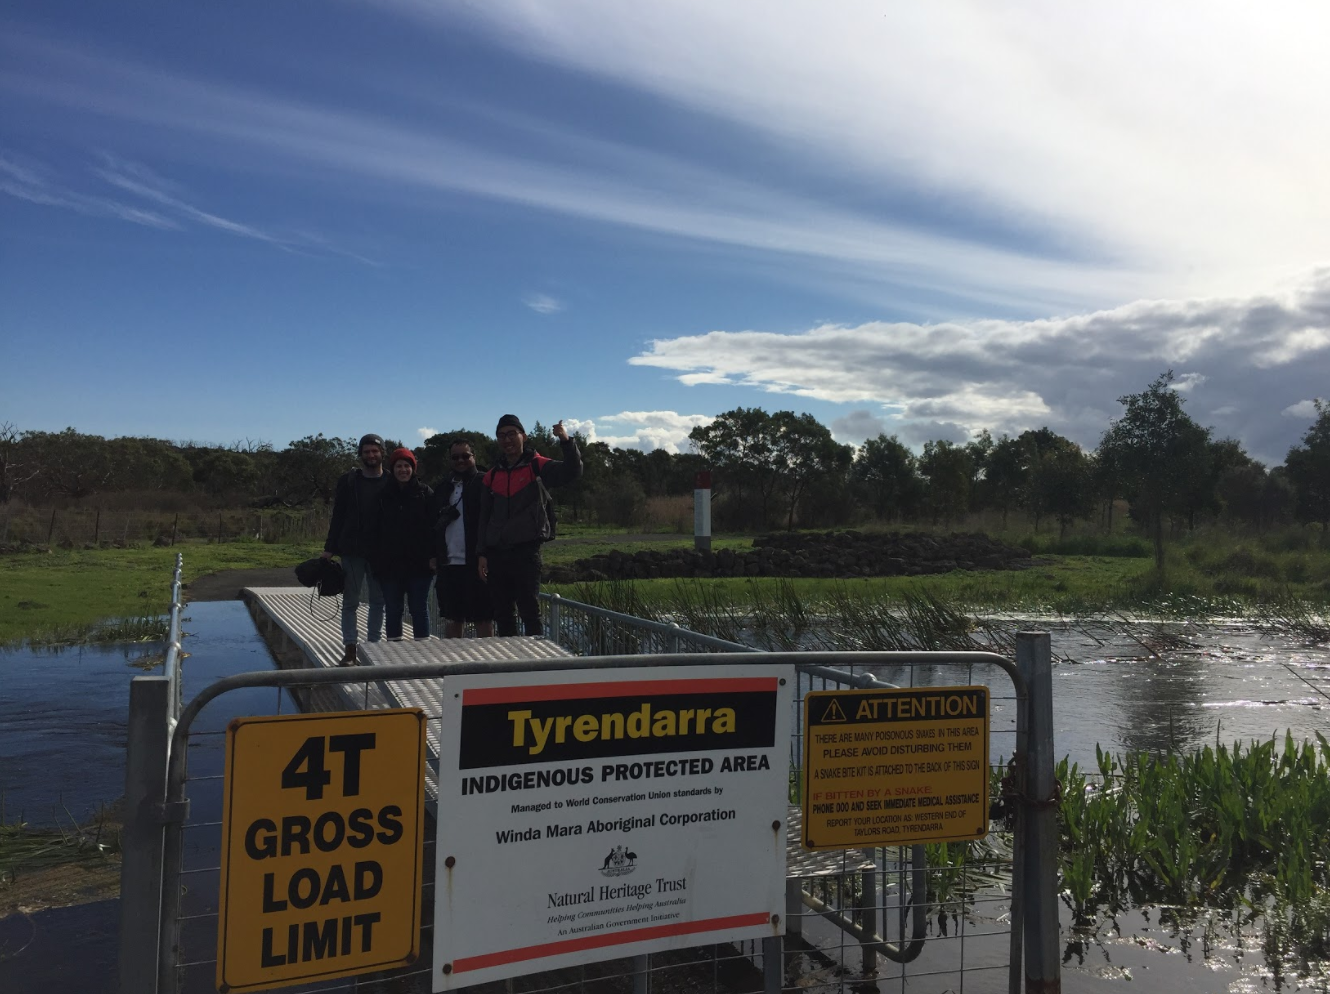 RMIT MASTER OF MEDIA STUDENTS AT TYRENDARRA INDIGENOUS PROTECTED AREA